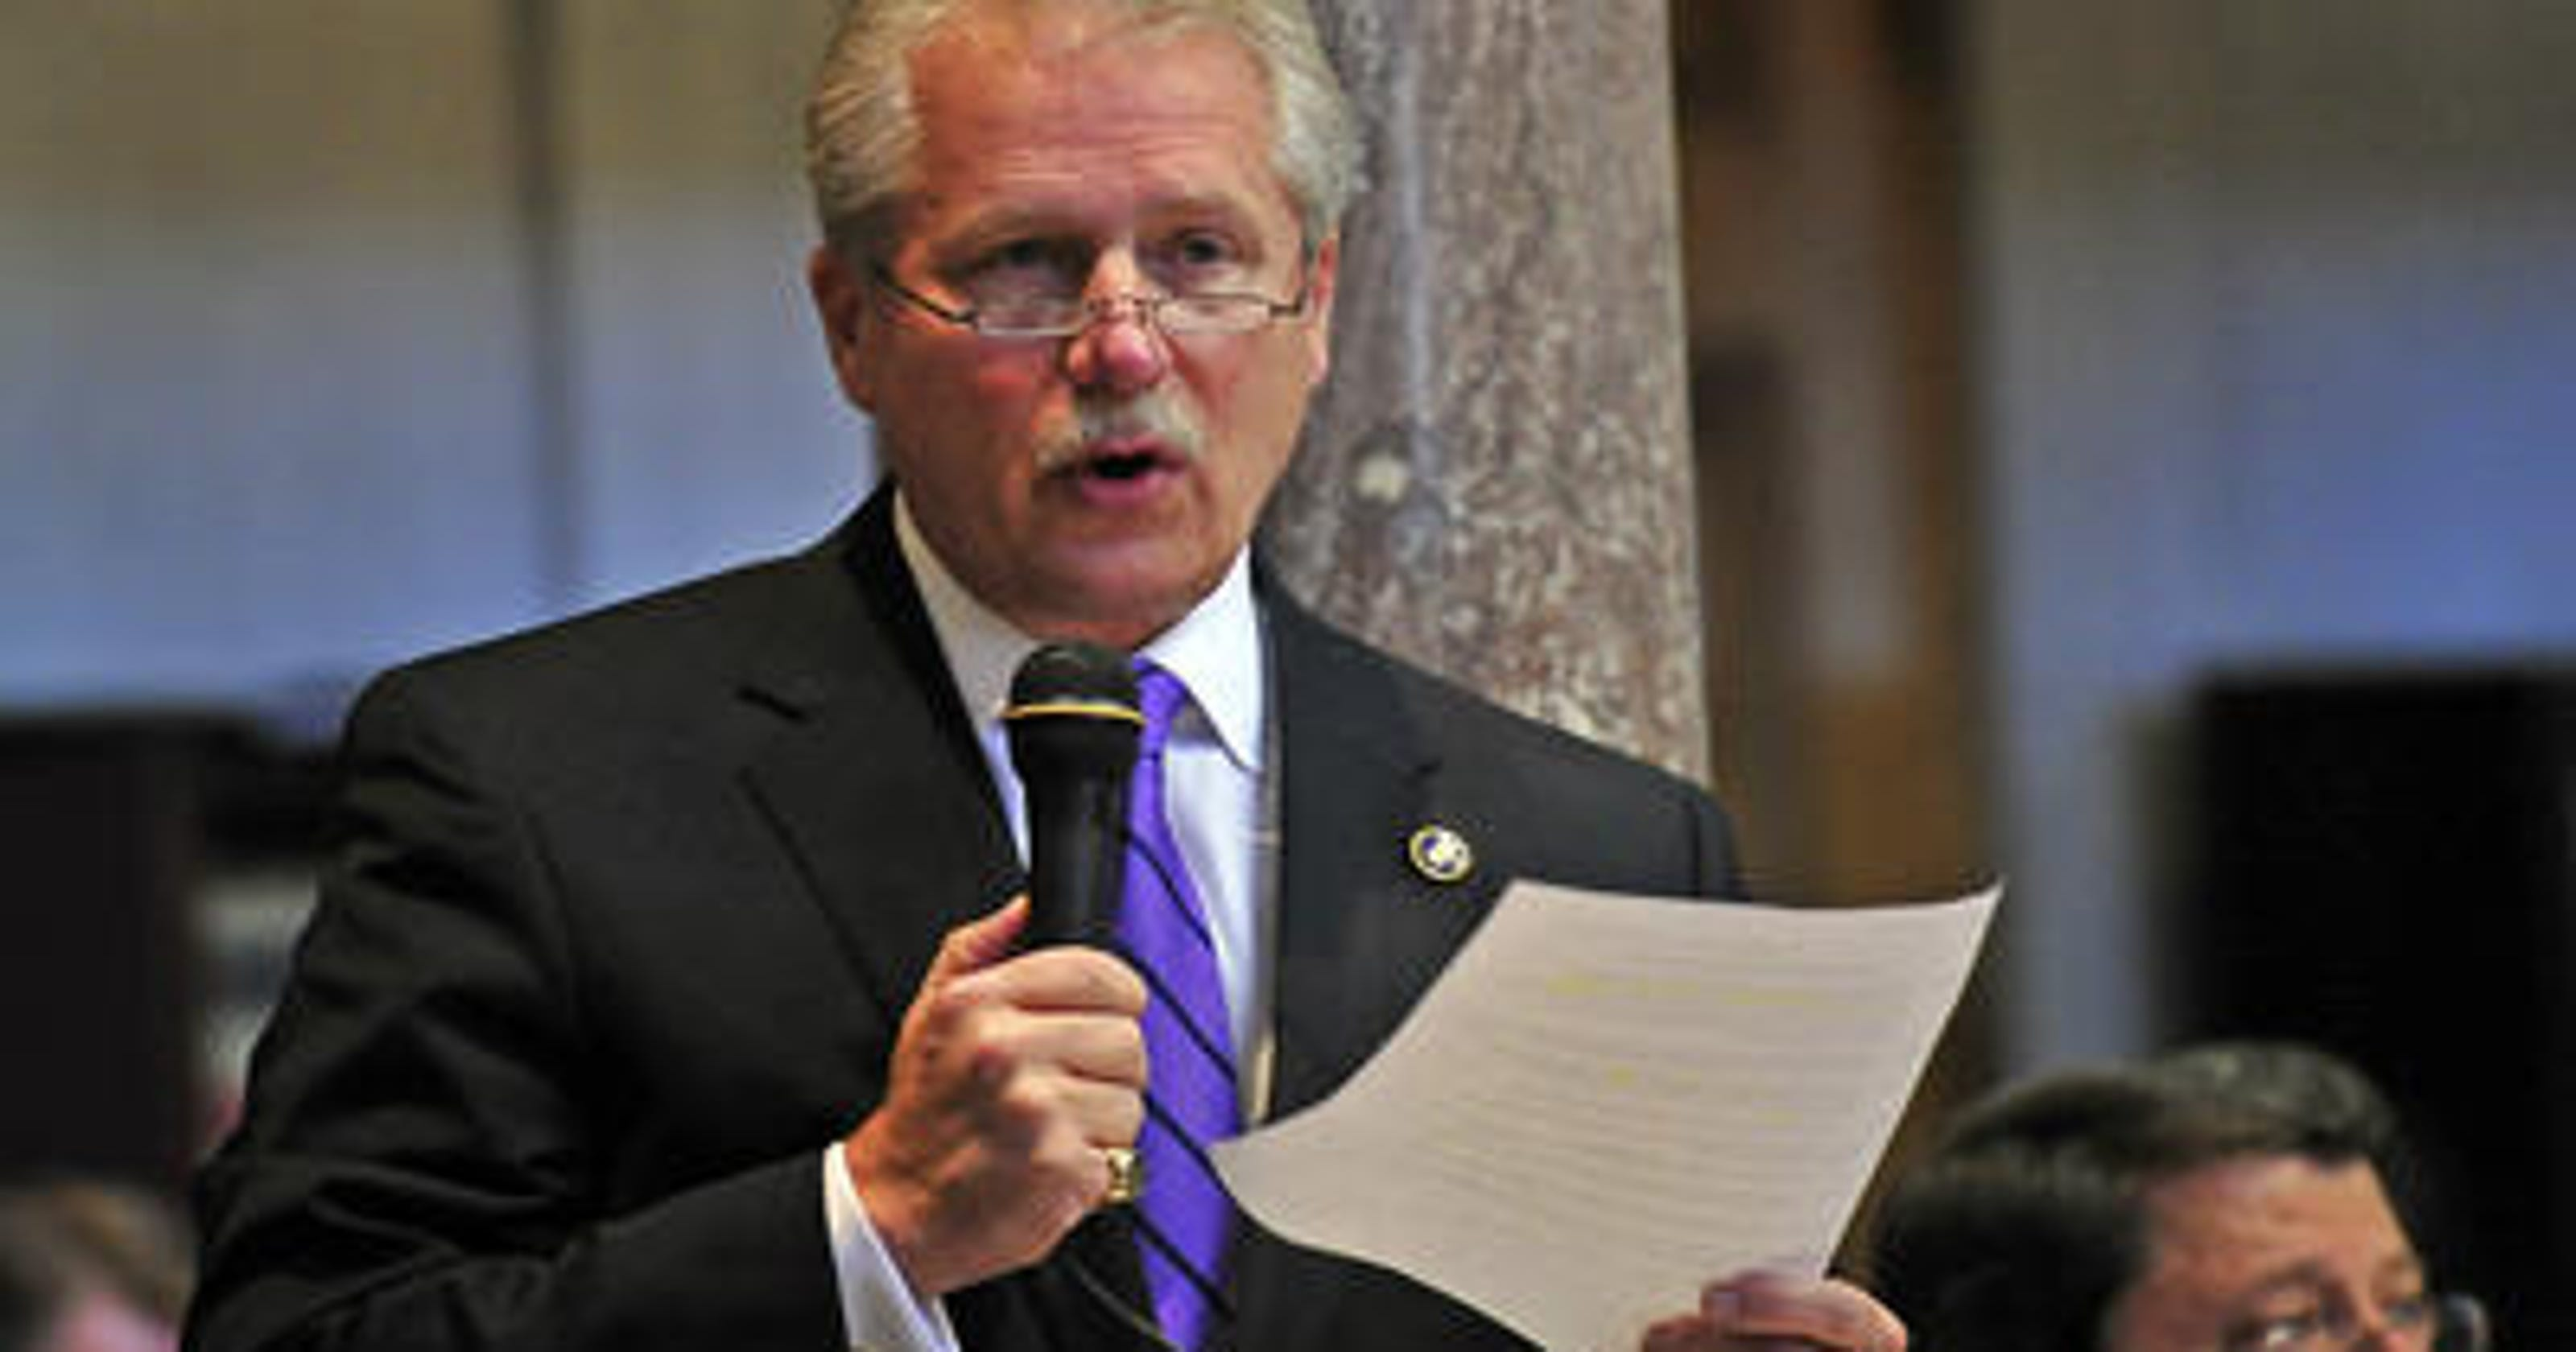 Senator Blindsided By Bill To Increase Daily Allowance For Tennessee Lawmakers